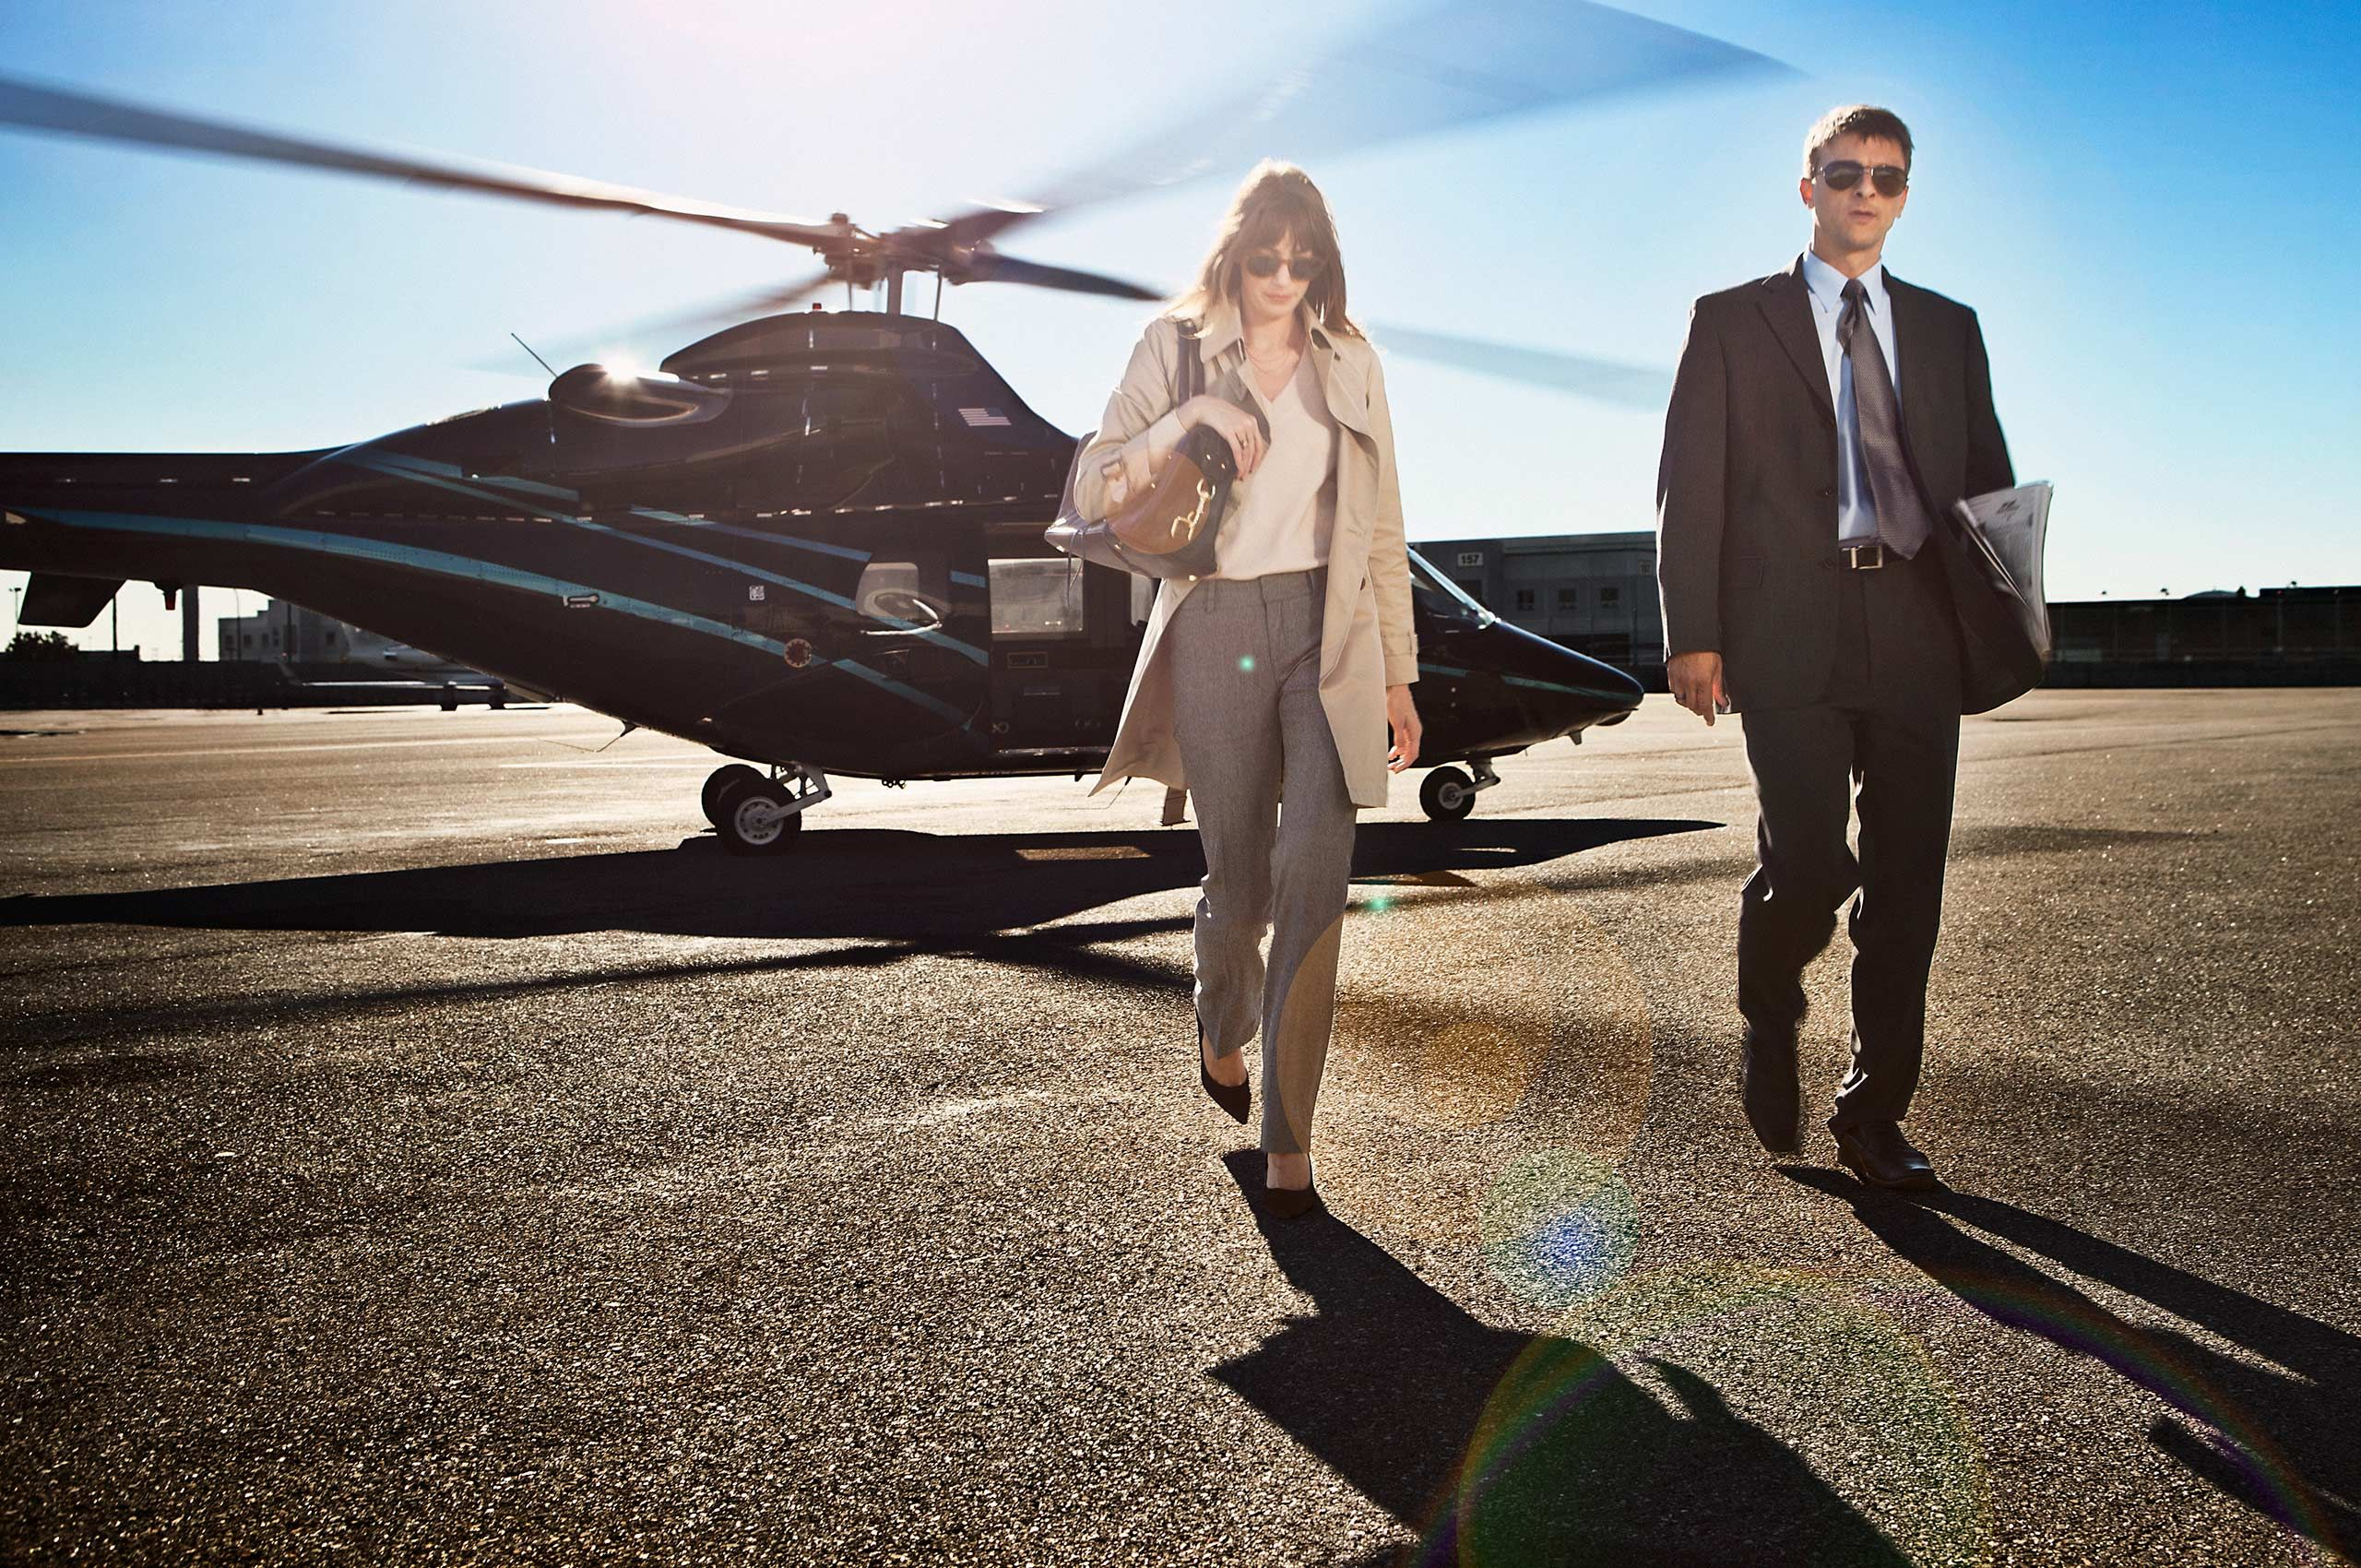 Couple-exiting-chartered-helicoper-HenrikOlundPhotography.jpg